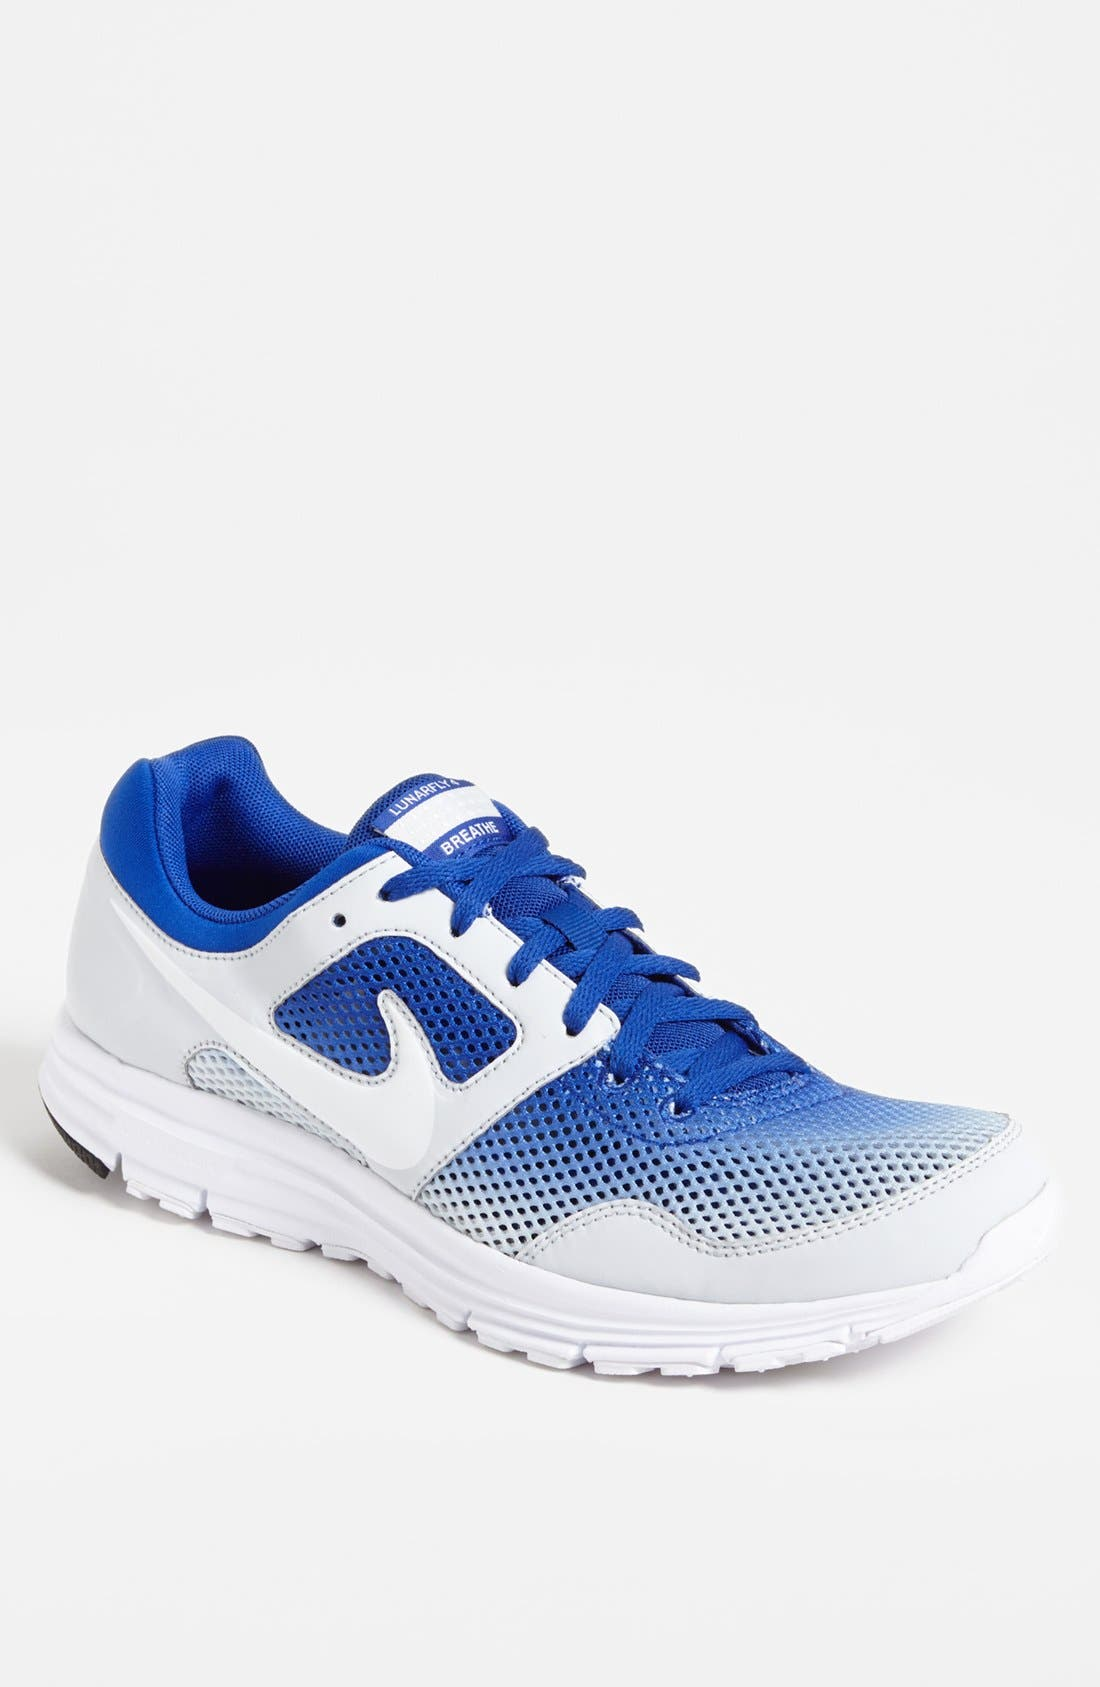 Alternate Image 1 Selected - Nike 'Lunarfly+ 4 Breathe' Running Shoe (Men)